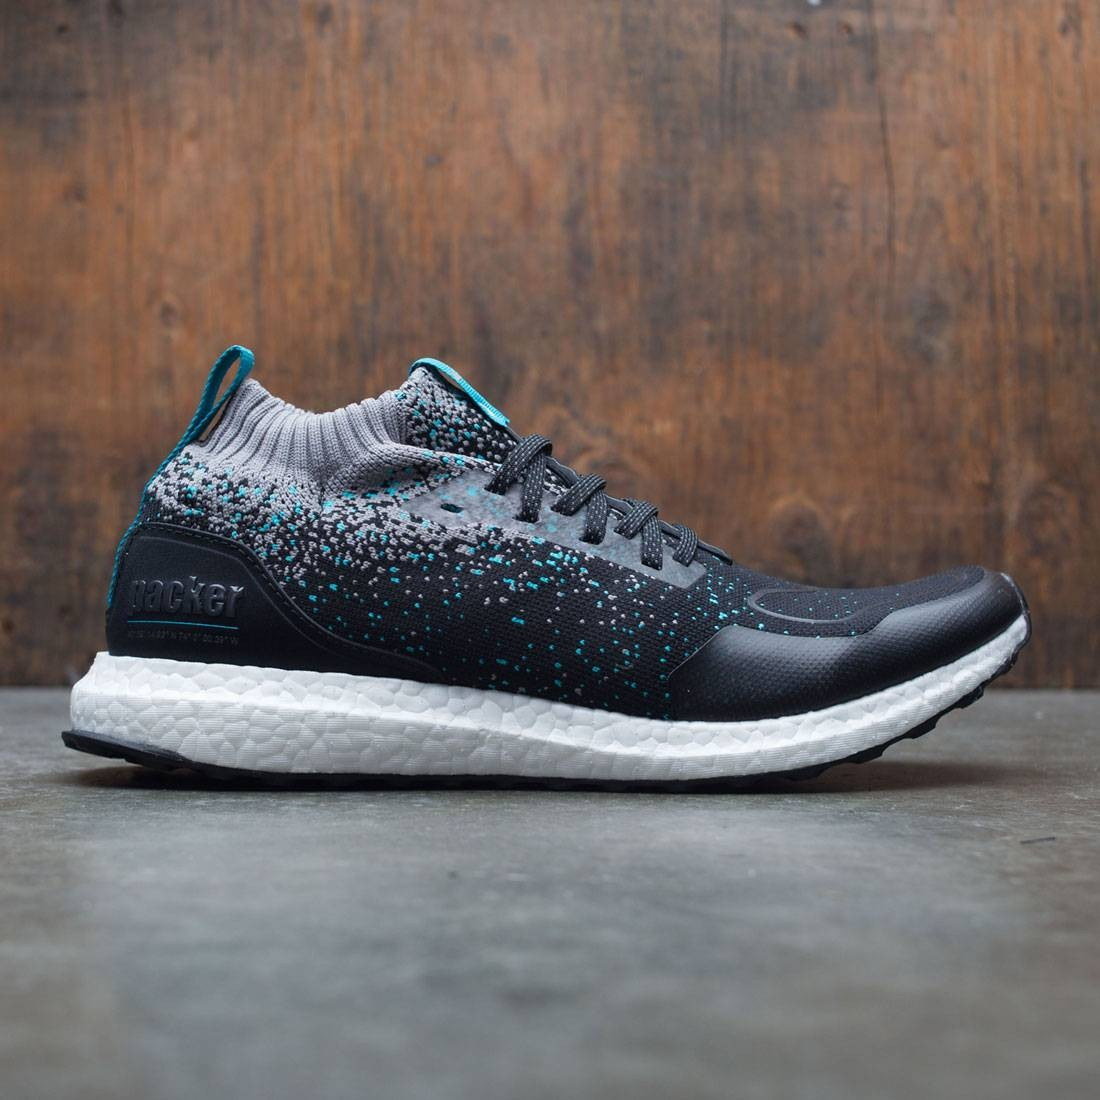 2d51ab7a6418 Adidas Consortium x Packer x Solebox Men UltraBOOST Mid Sneaker Exchange  black core black energy blue